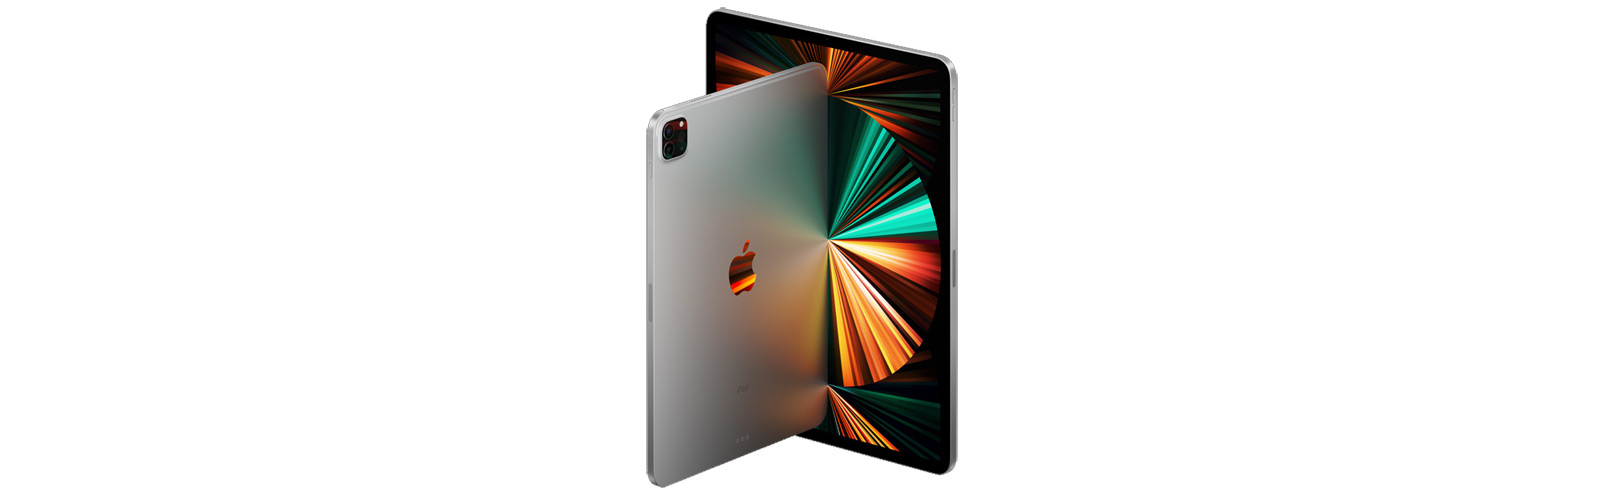 "Apple iPad Pro with a 12.9"" Liquid Retina XDR display, Mini LED backlight and M1 chip is announced"